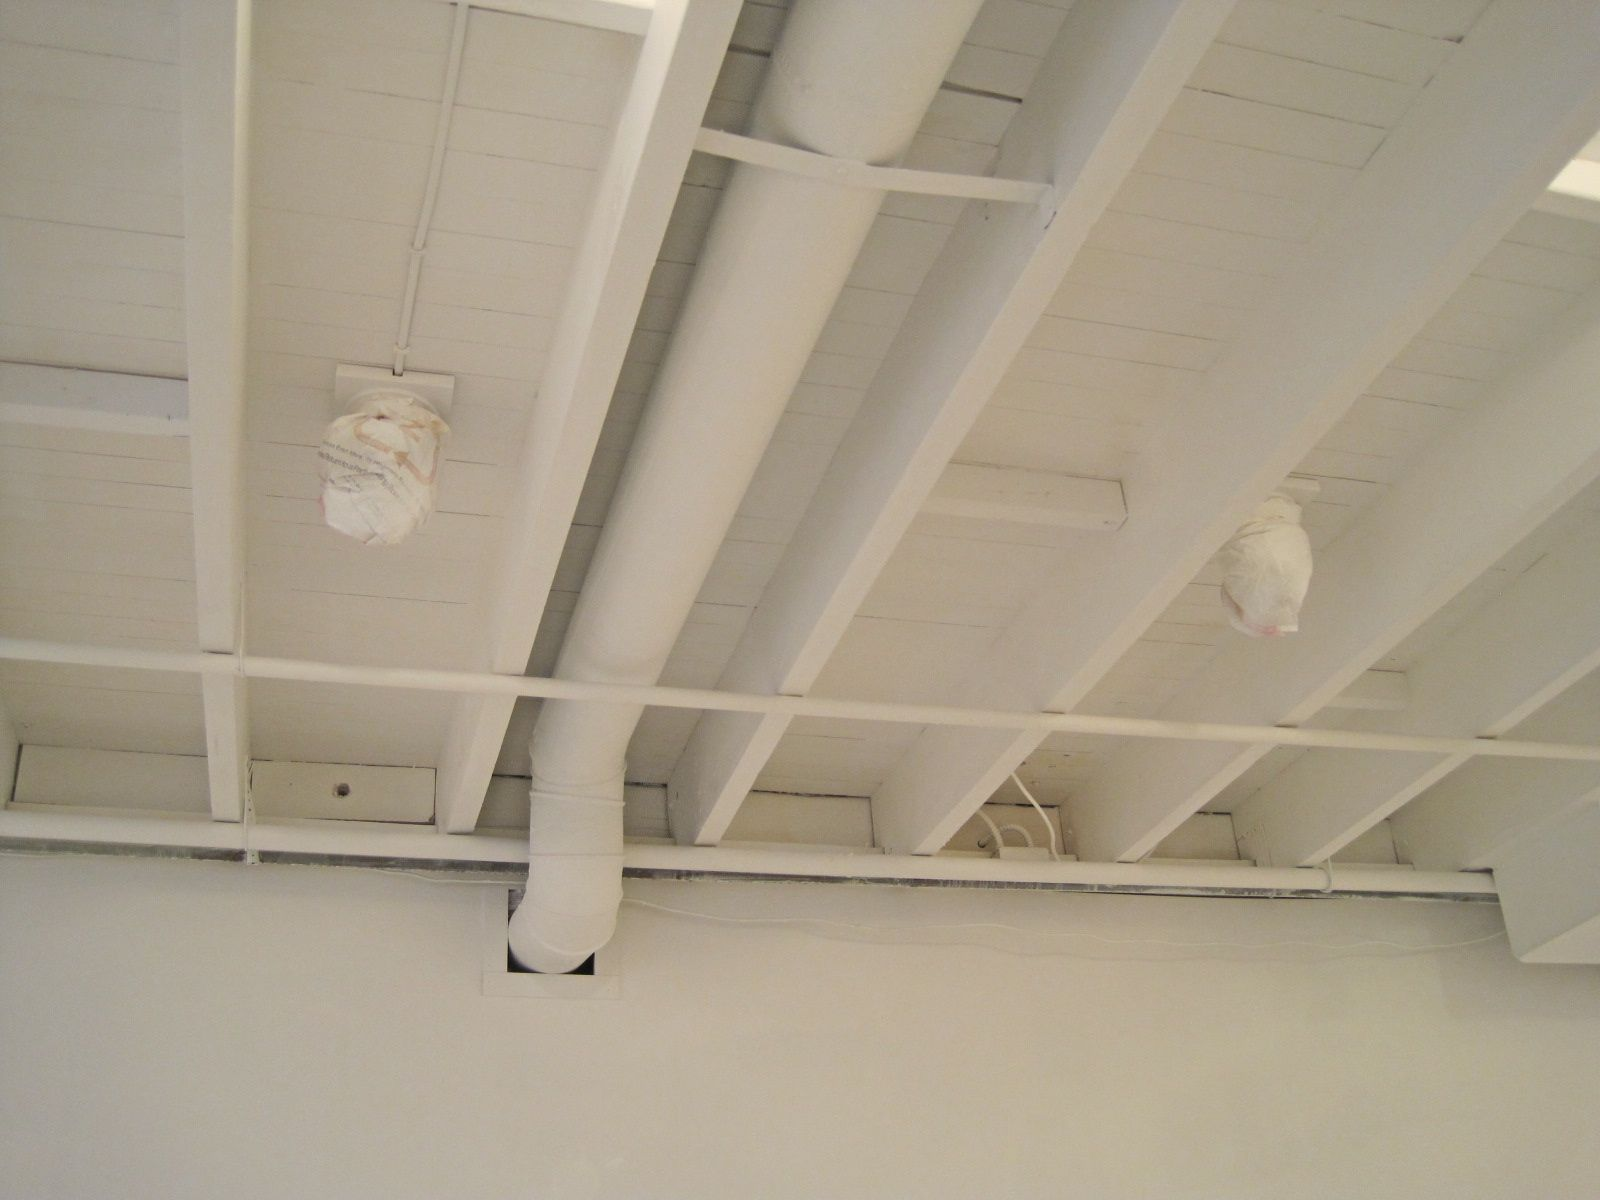 Superb Spray Paint Bat Ceiling Ideas Bats Painting And